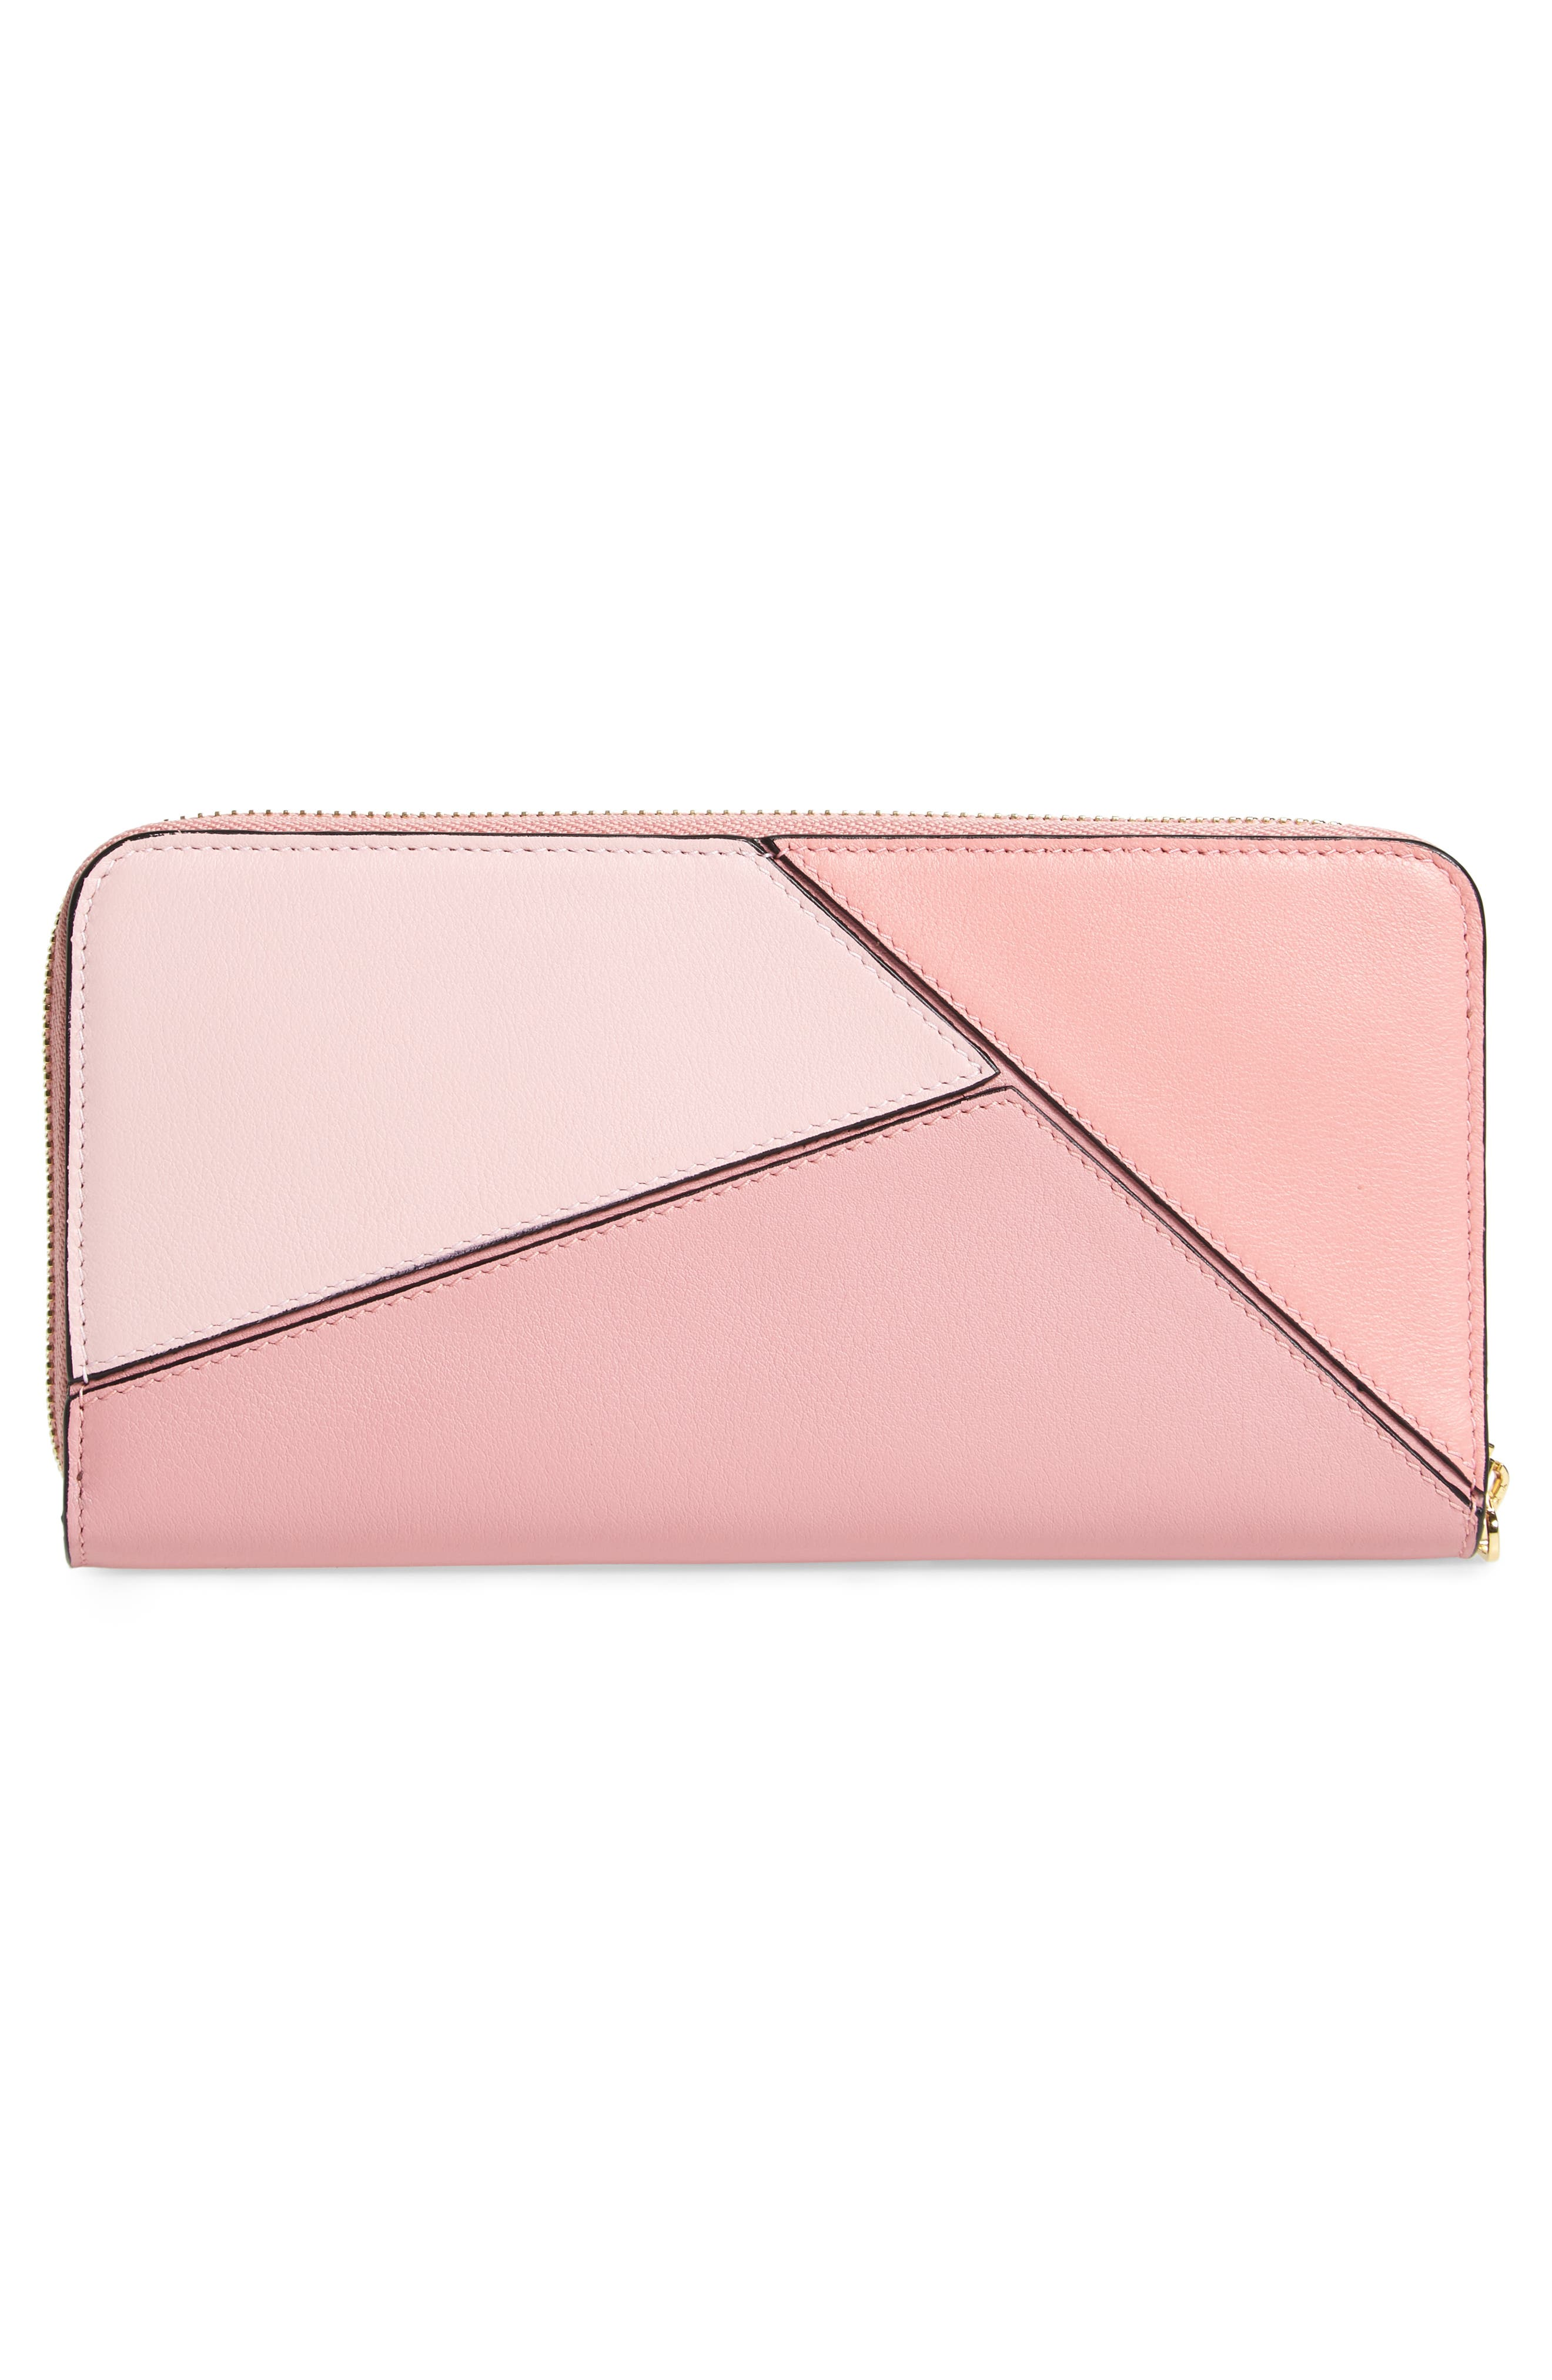 Puzzle Leather Zip Around Wallet,                             Alternate thumbnail 3, color,                             SOFT PINK/ CANDY/ DARK PINK